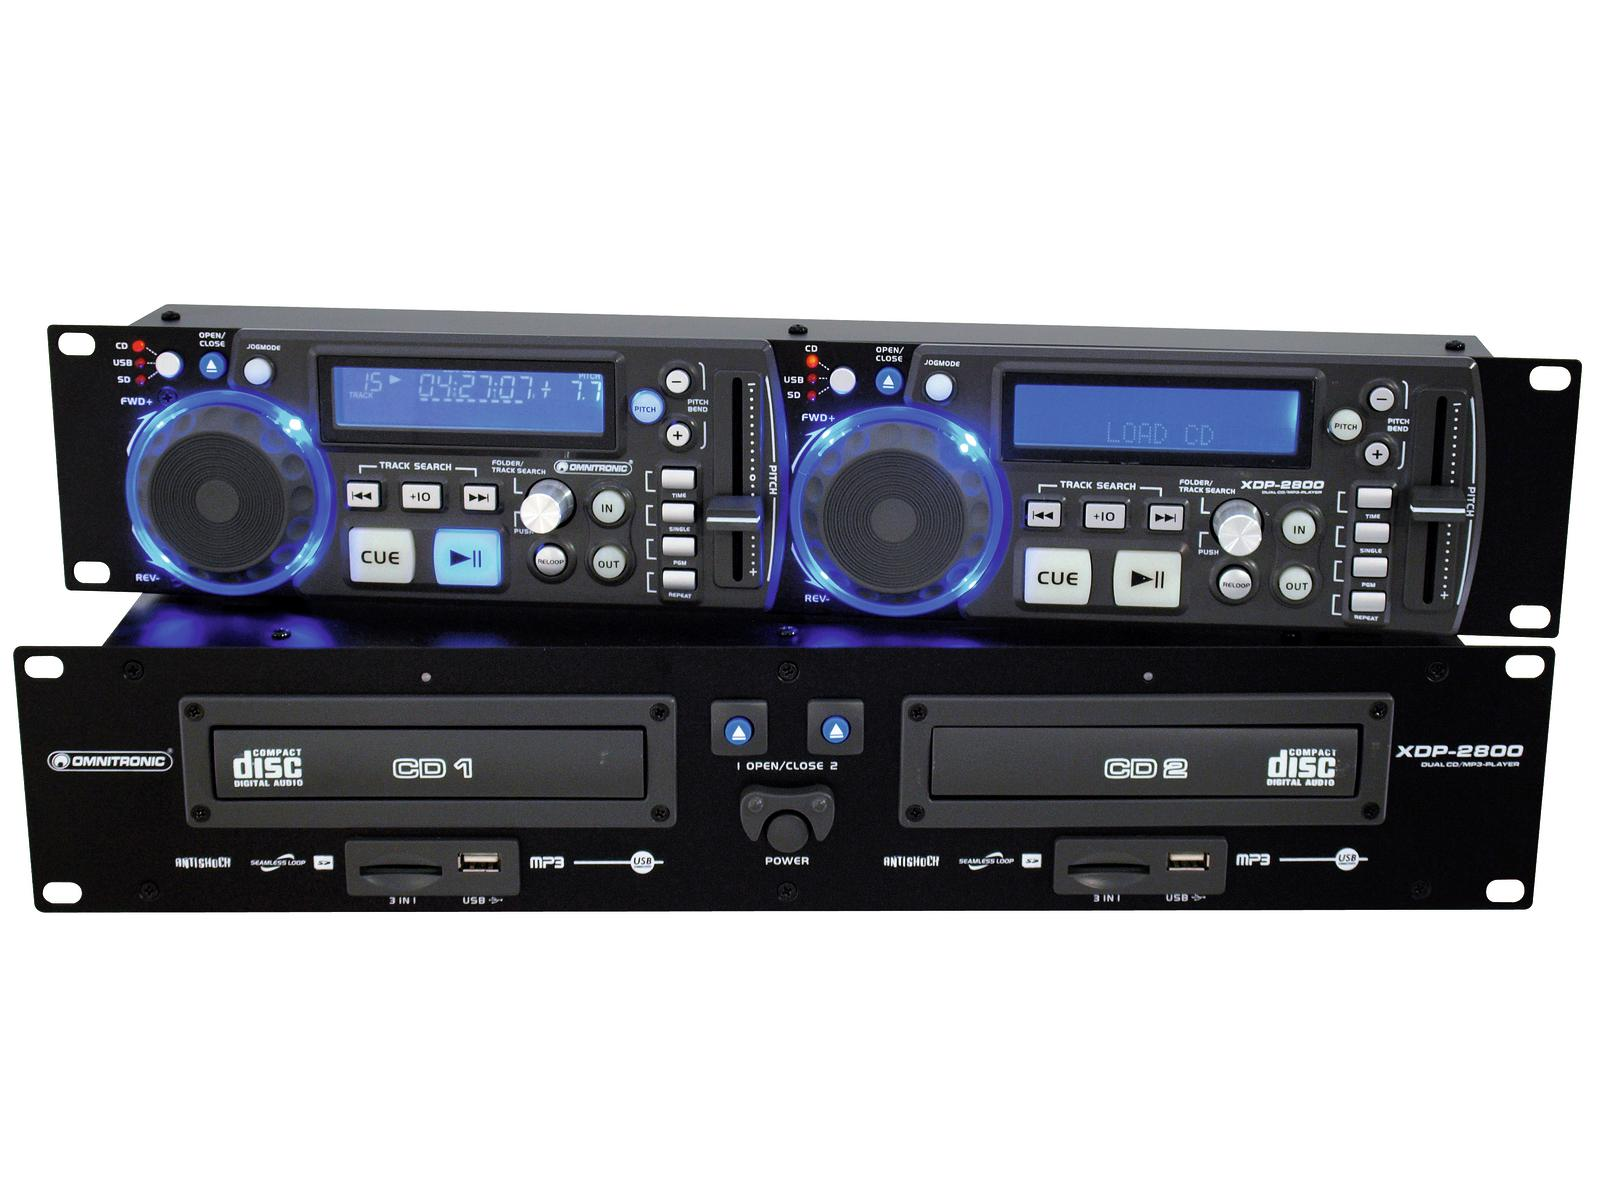 omnitronic-xdp-2800-dual-cd-mp3-sd-usb